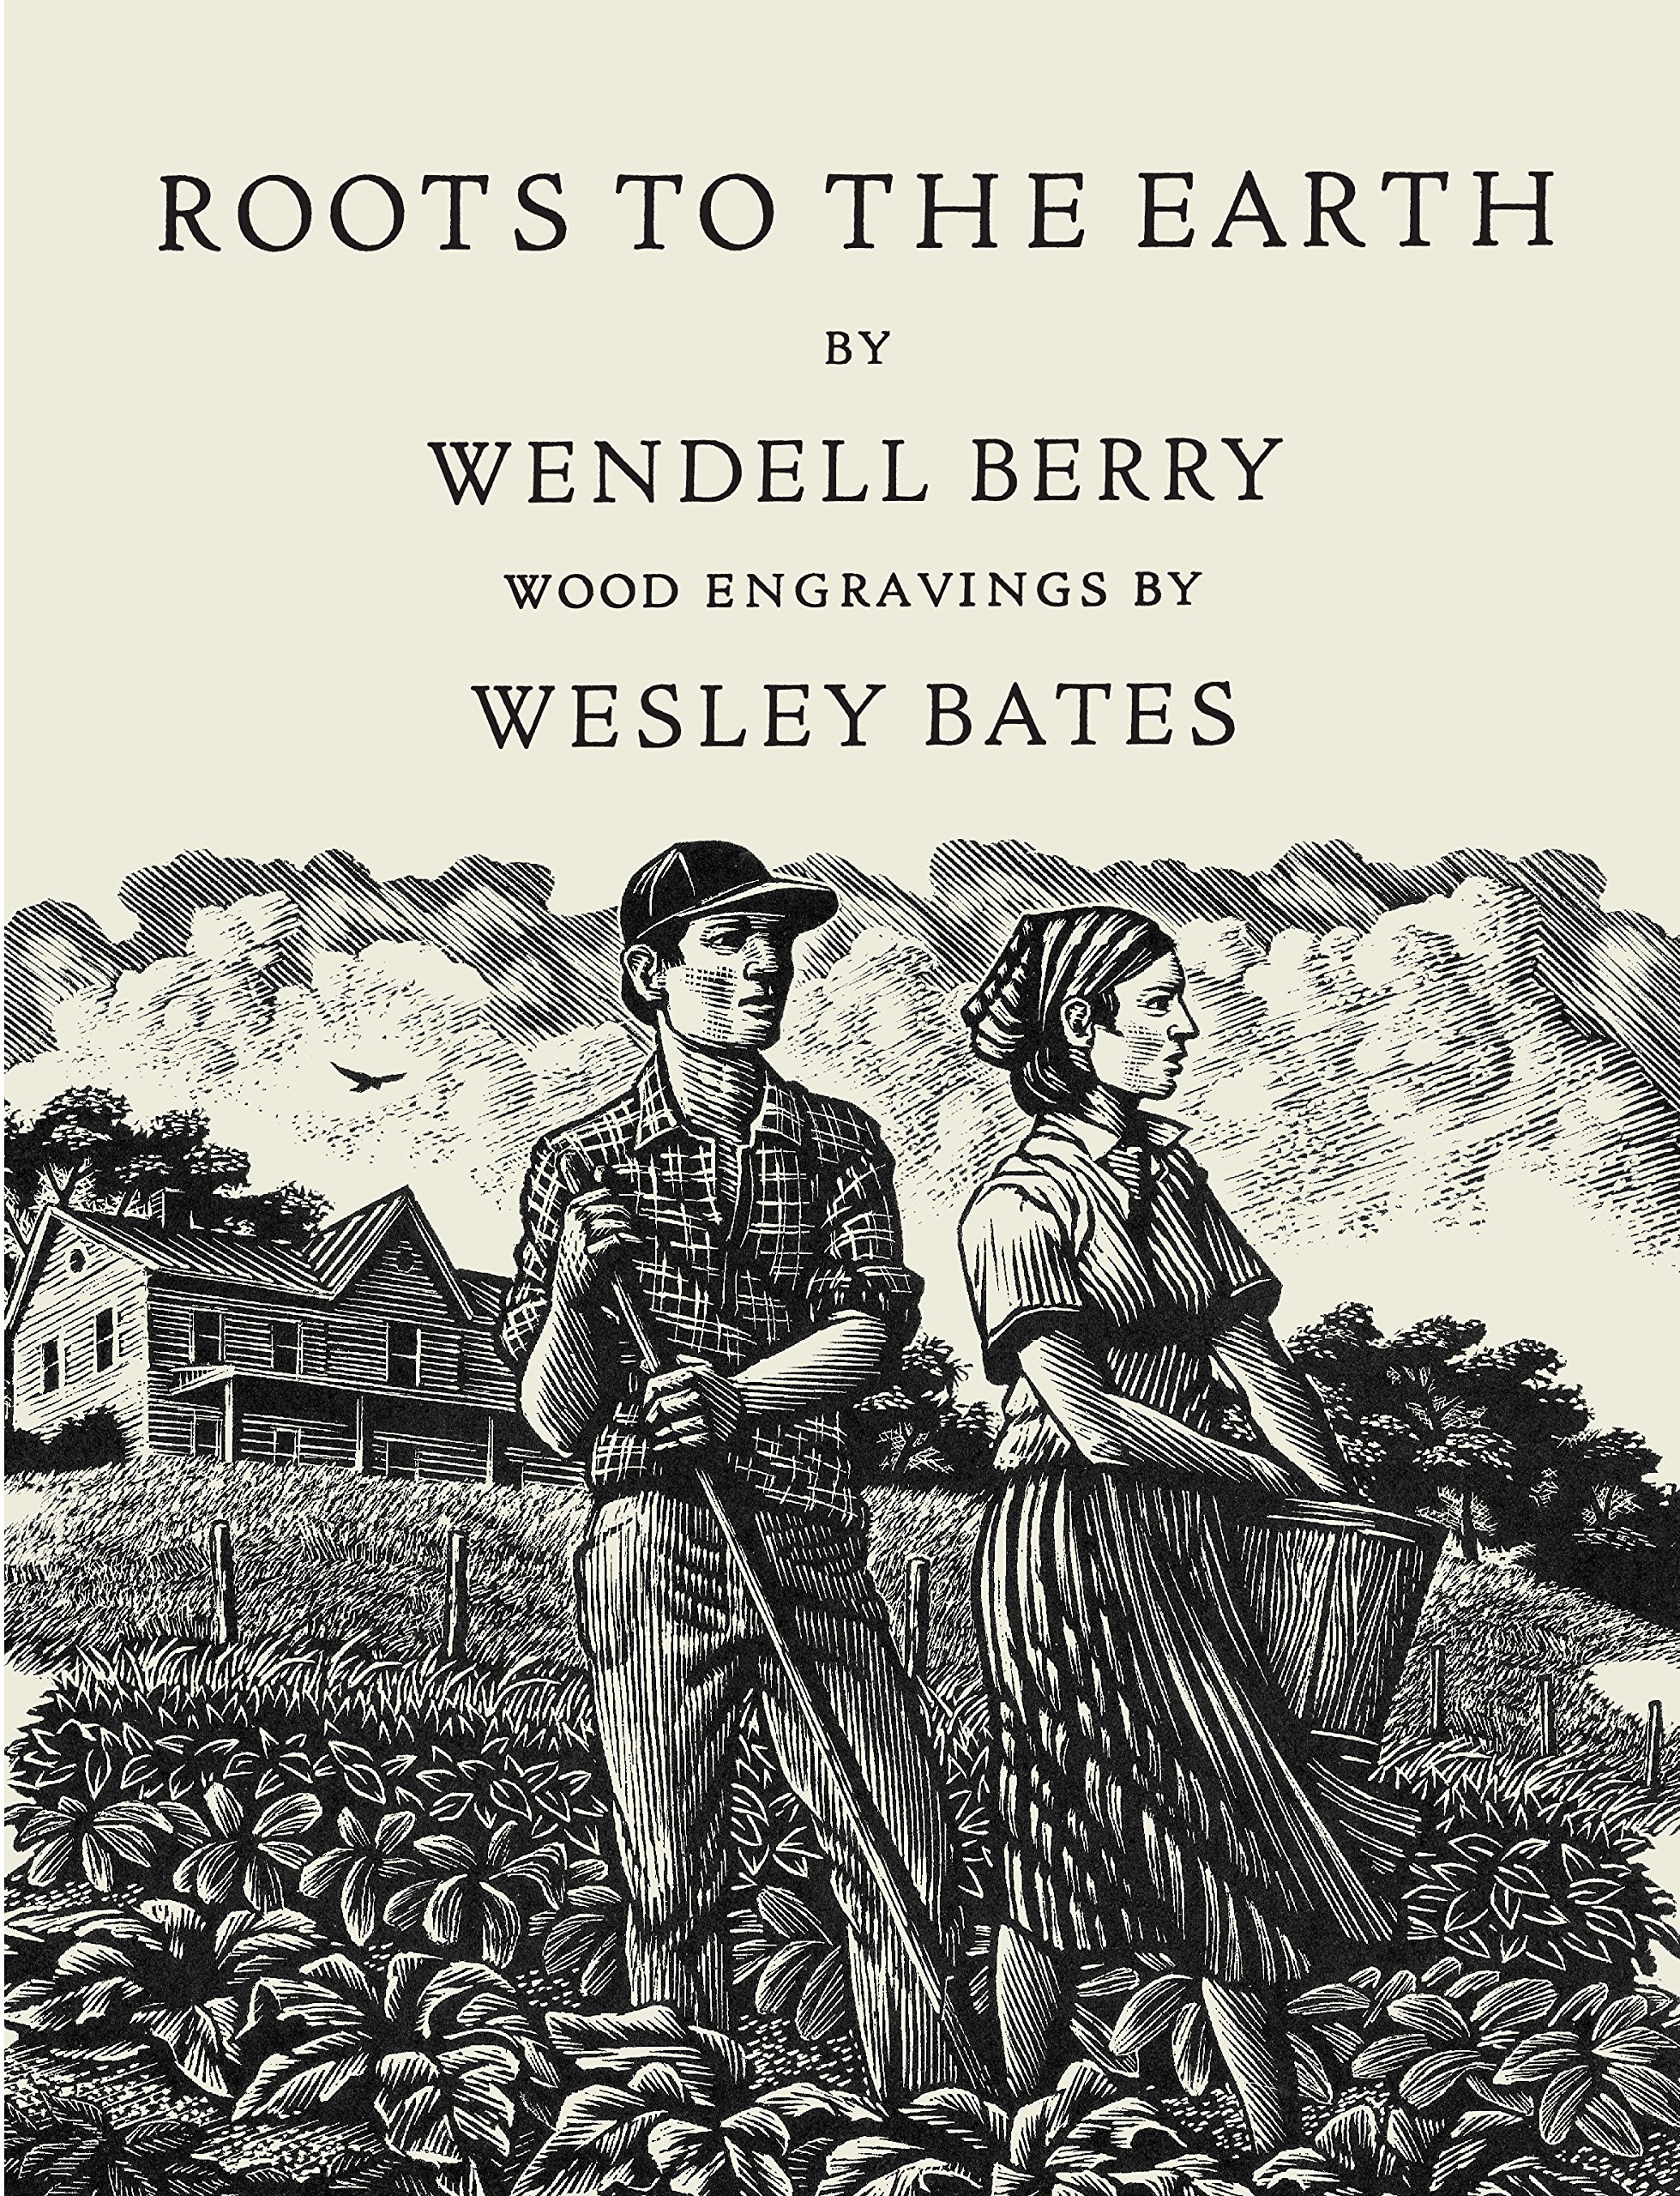 com roots to the earth poems and a story  com roots to the earth poems and a story 9781619027800 wendell berry wesley bates books